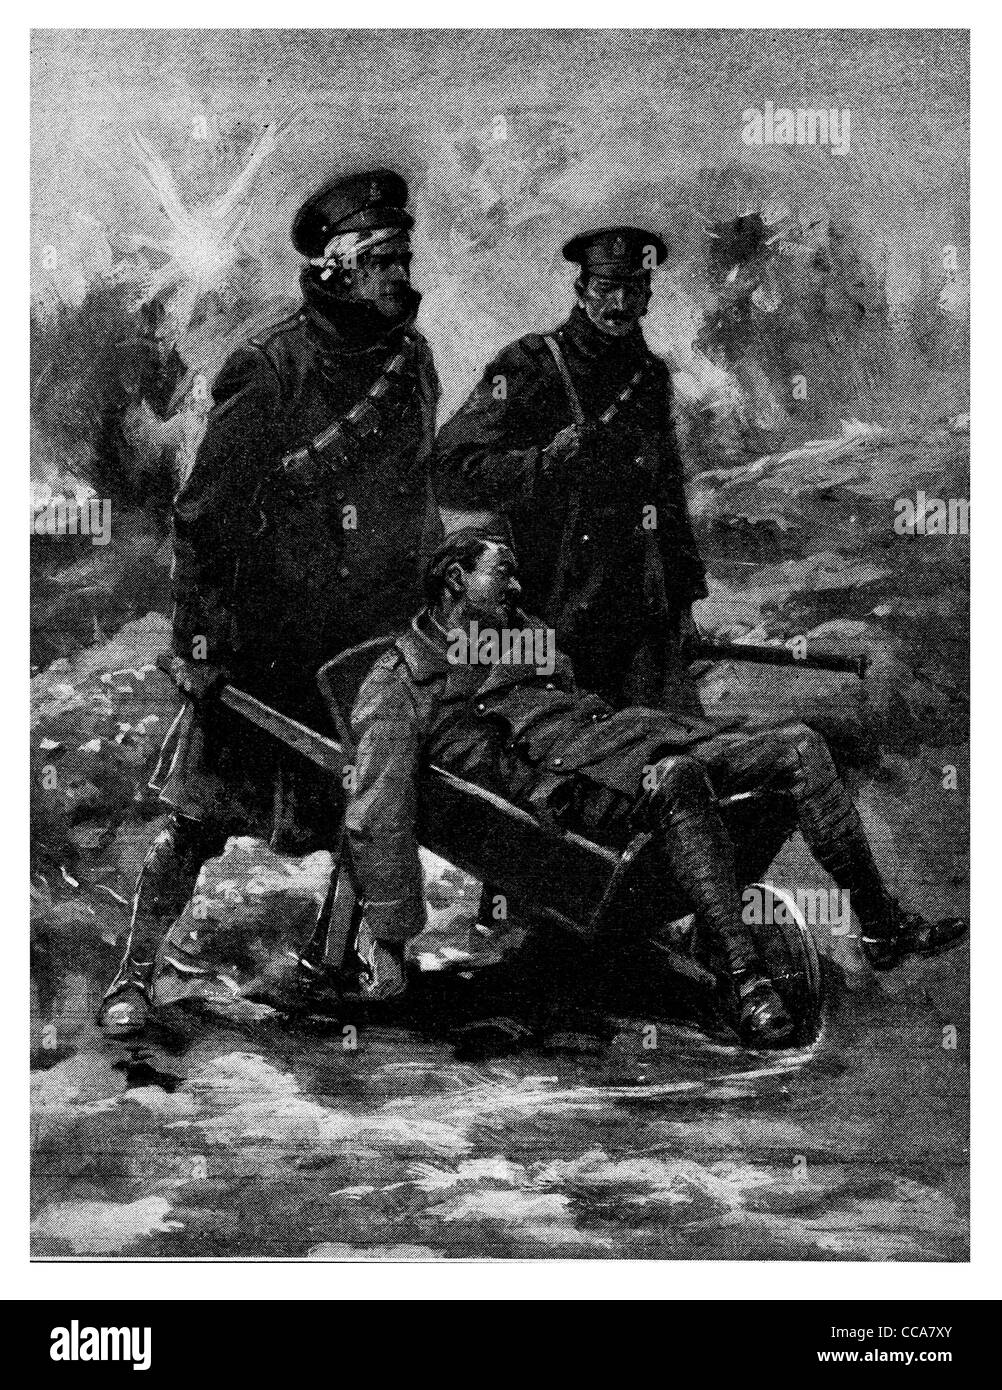 1916 wounded Hussar saves Officer wheelbarrow rescue wound injured injury help friendship explosion battle field - Stock Image